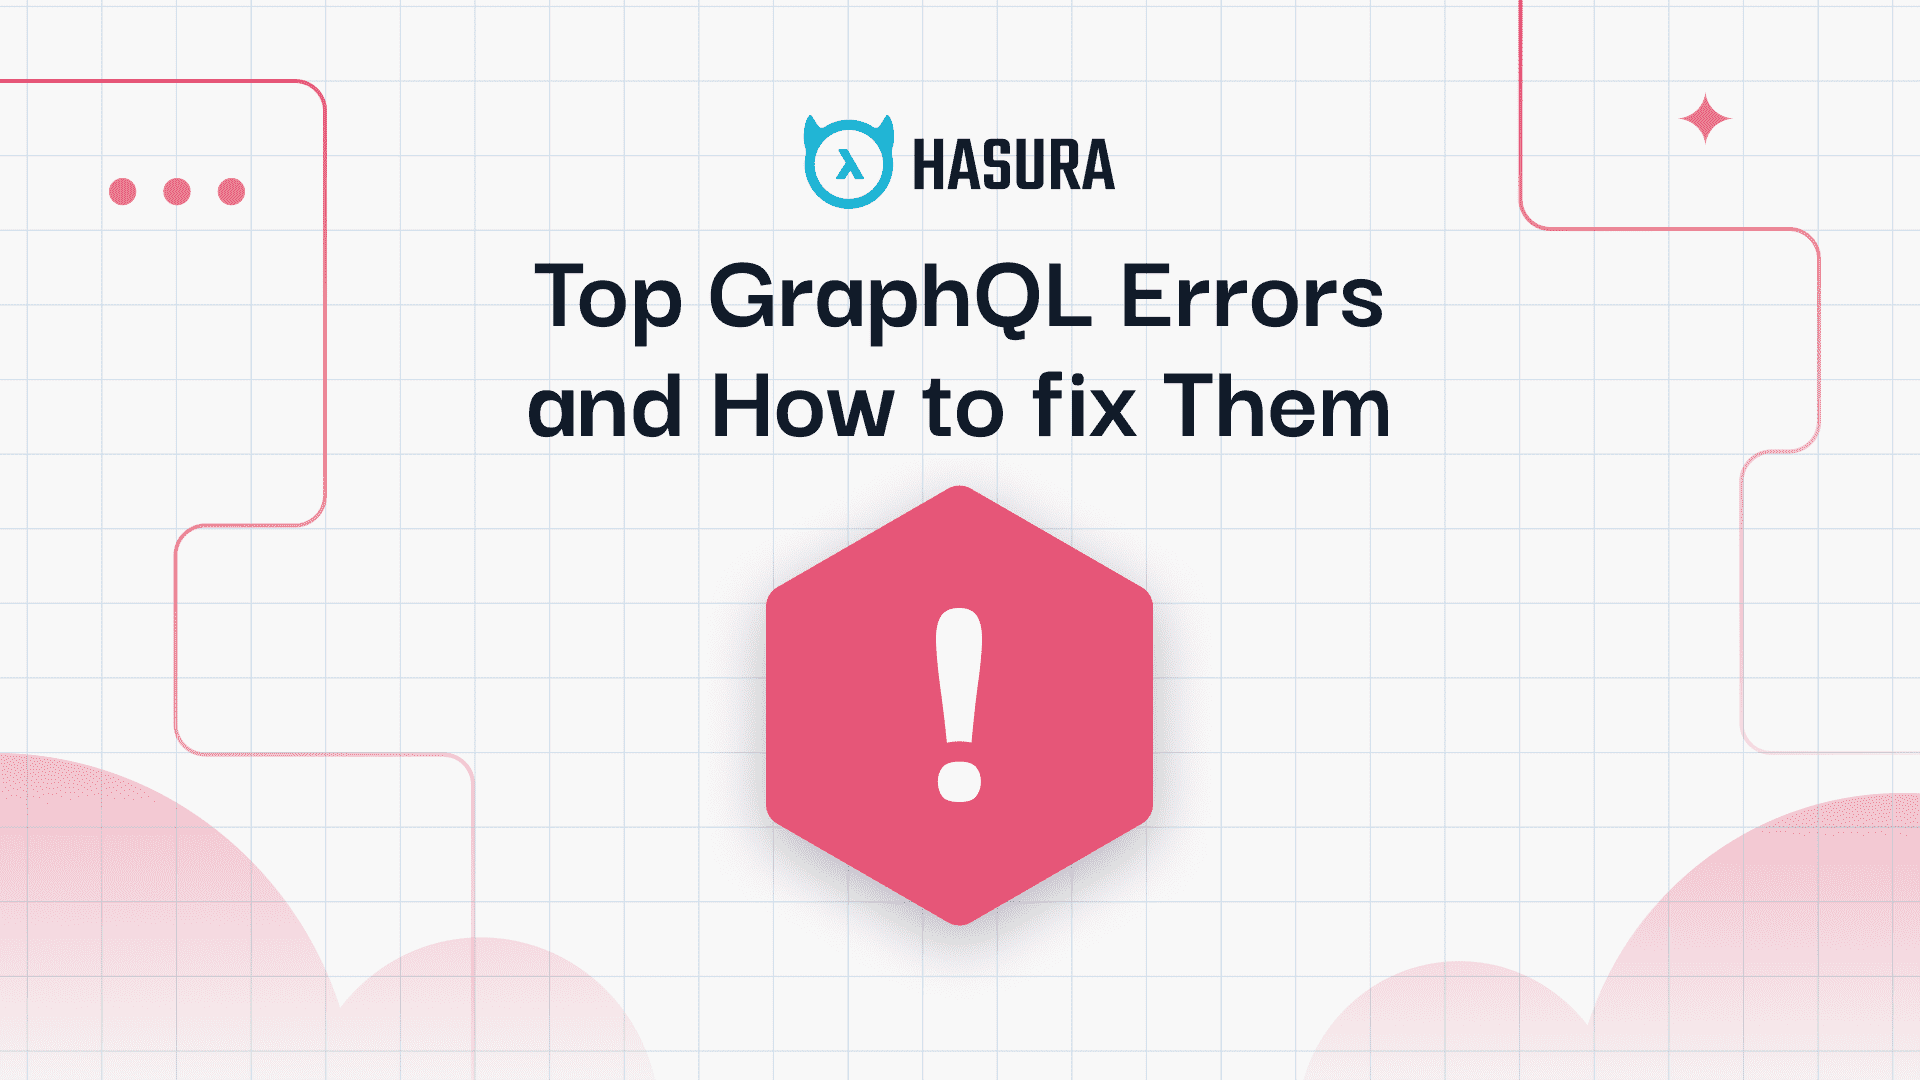 Top GraphQL Errors and How to Fix them